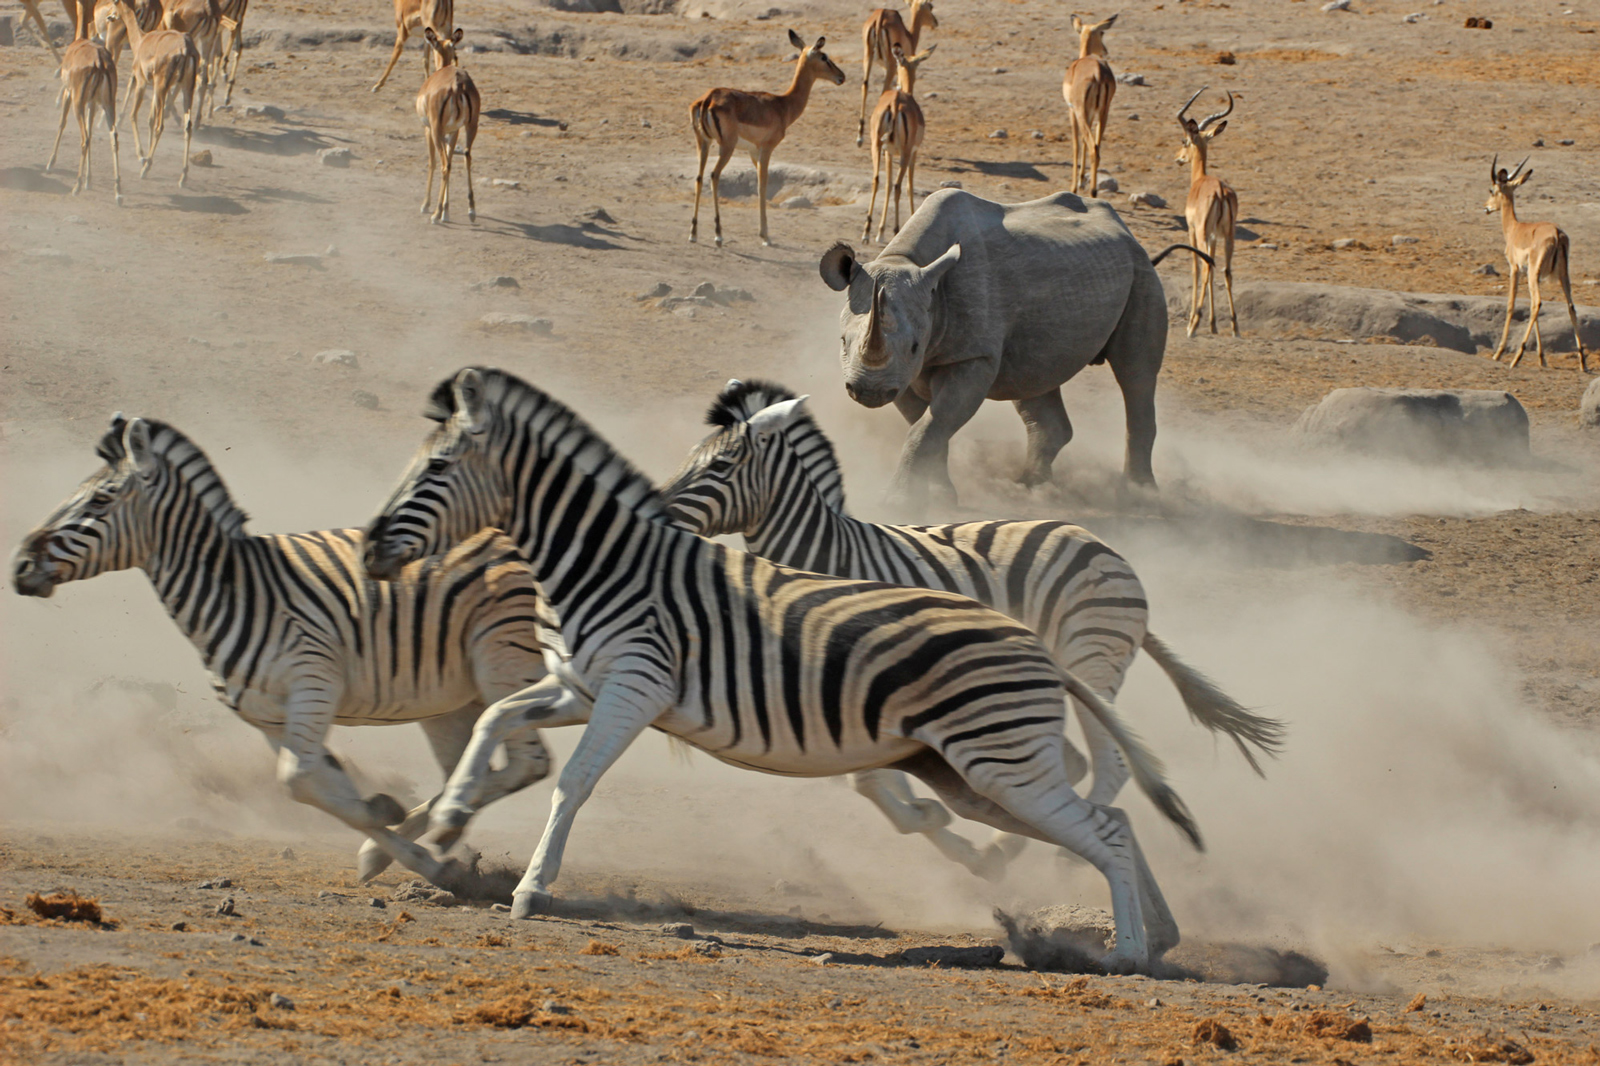 A rhino lets the zebras know who's boss ©Janine Avery